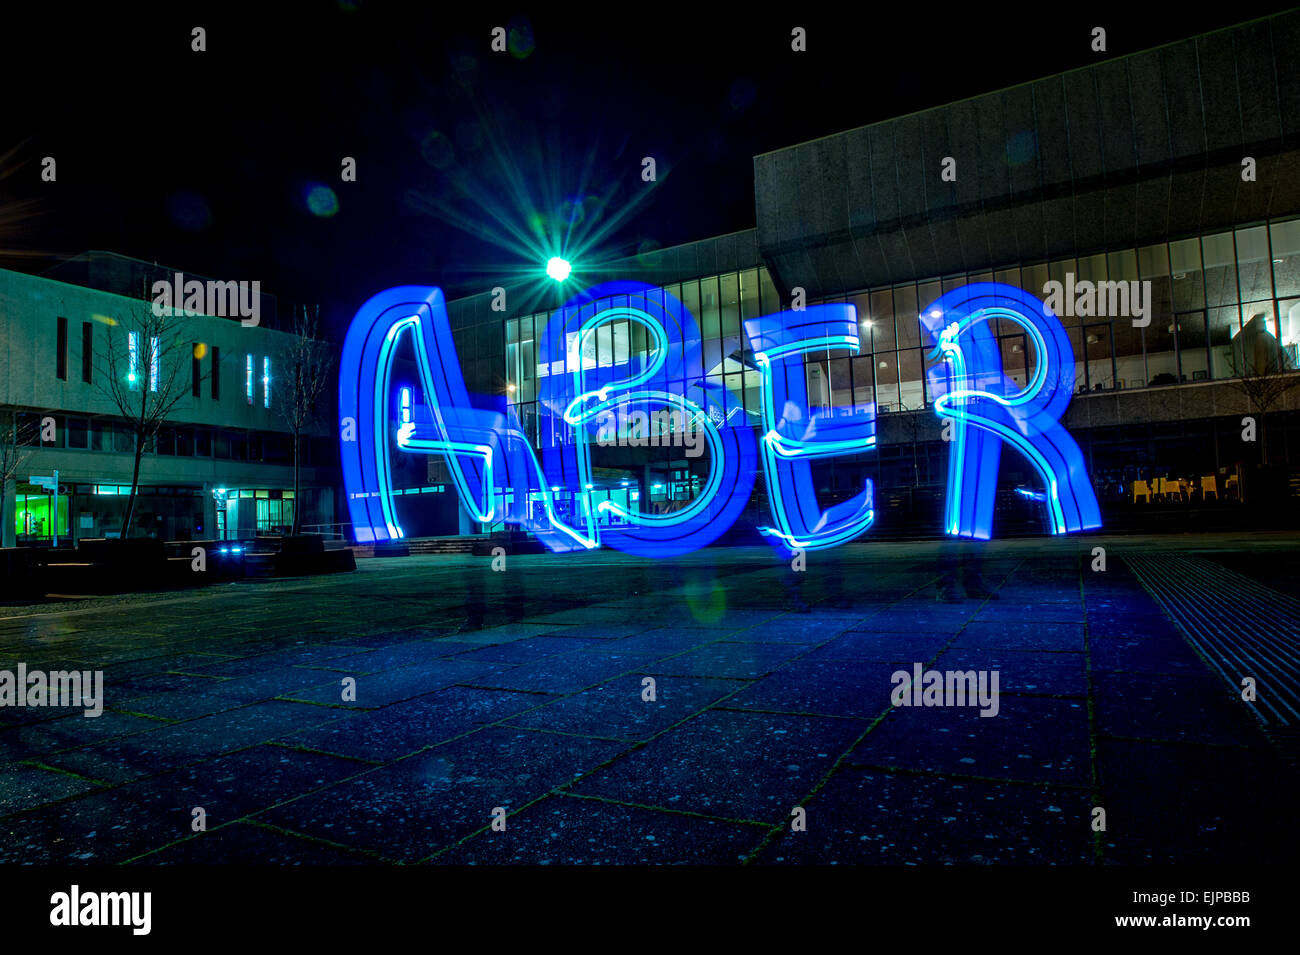 Lightbombing / light painting - the word 'ABER' painted in light outside Aberystwyth Arts Centre at night - Stock Image